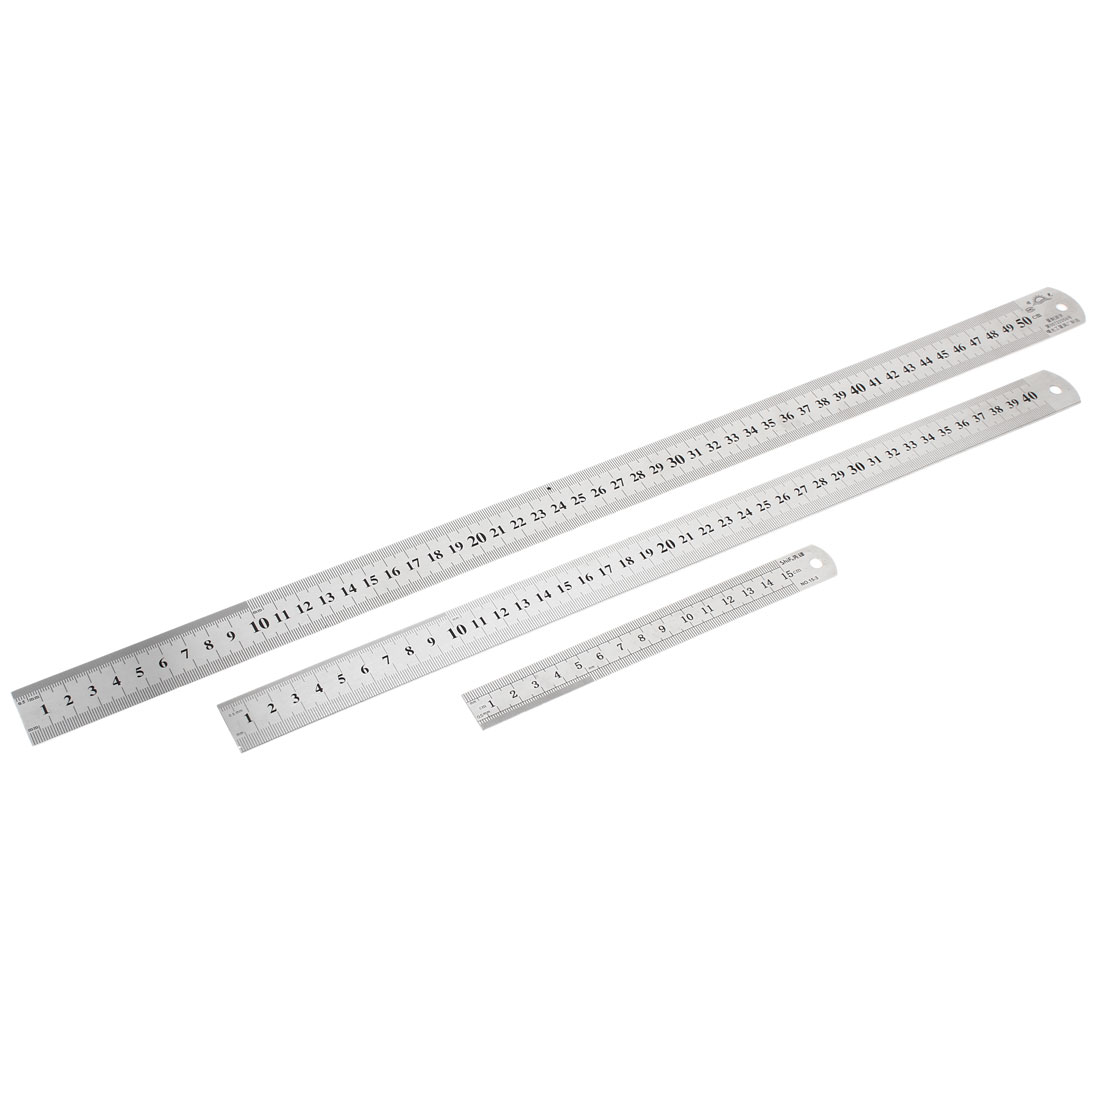 3 in 1 15cm 40cm 50cm Double Sides Students Metric Straight Ruler Silver Tone